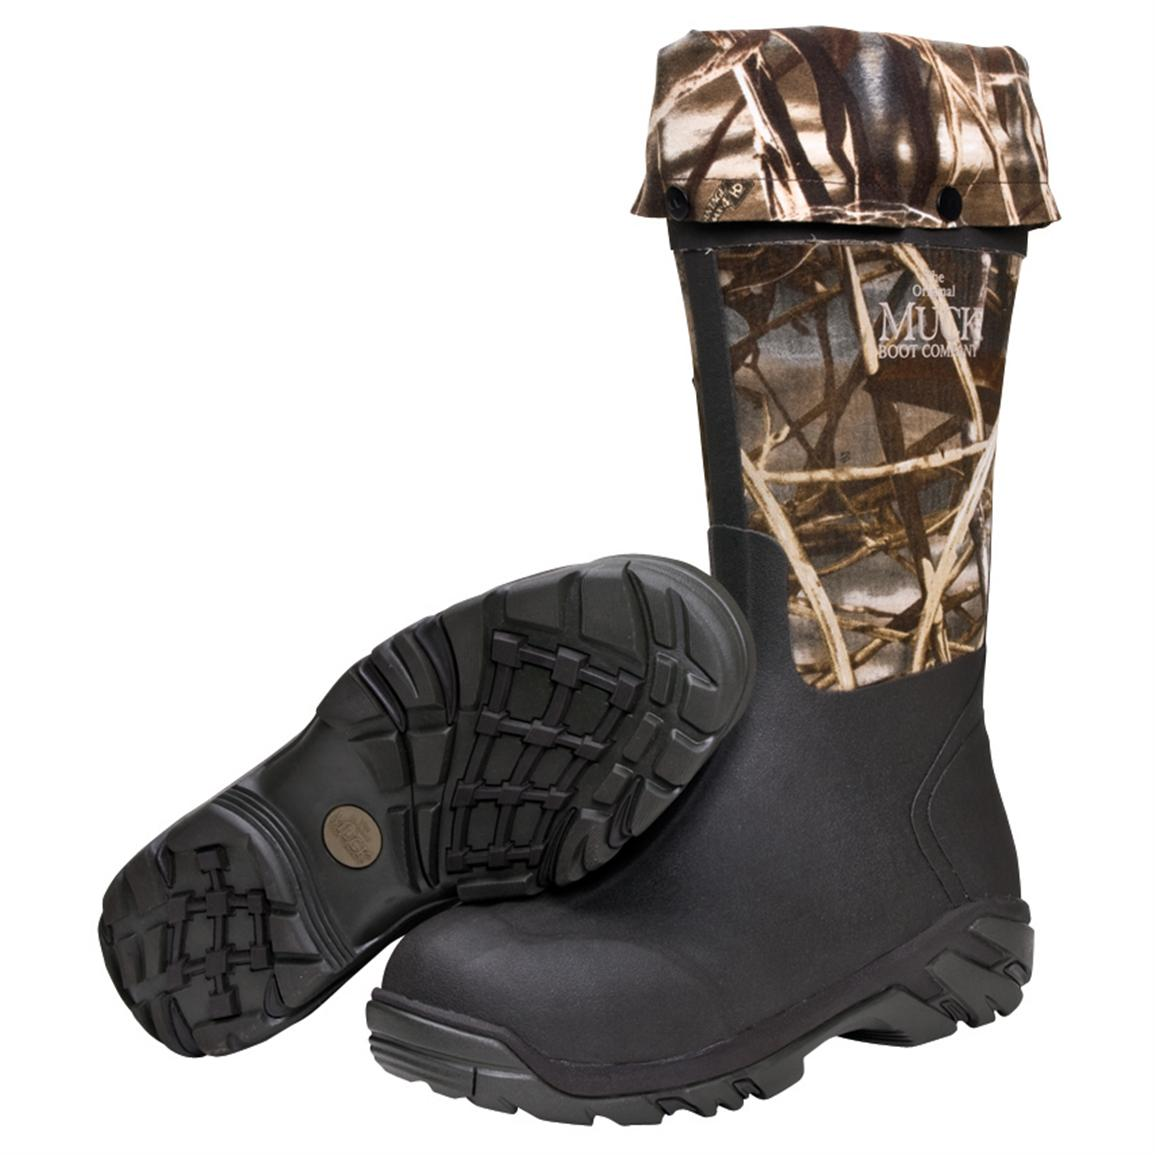 Muck Boots™ Woody Bayou Convertible Sport Boots